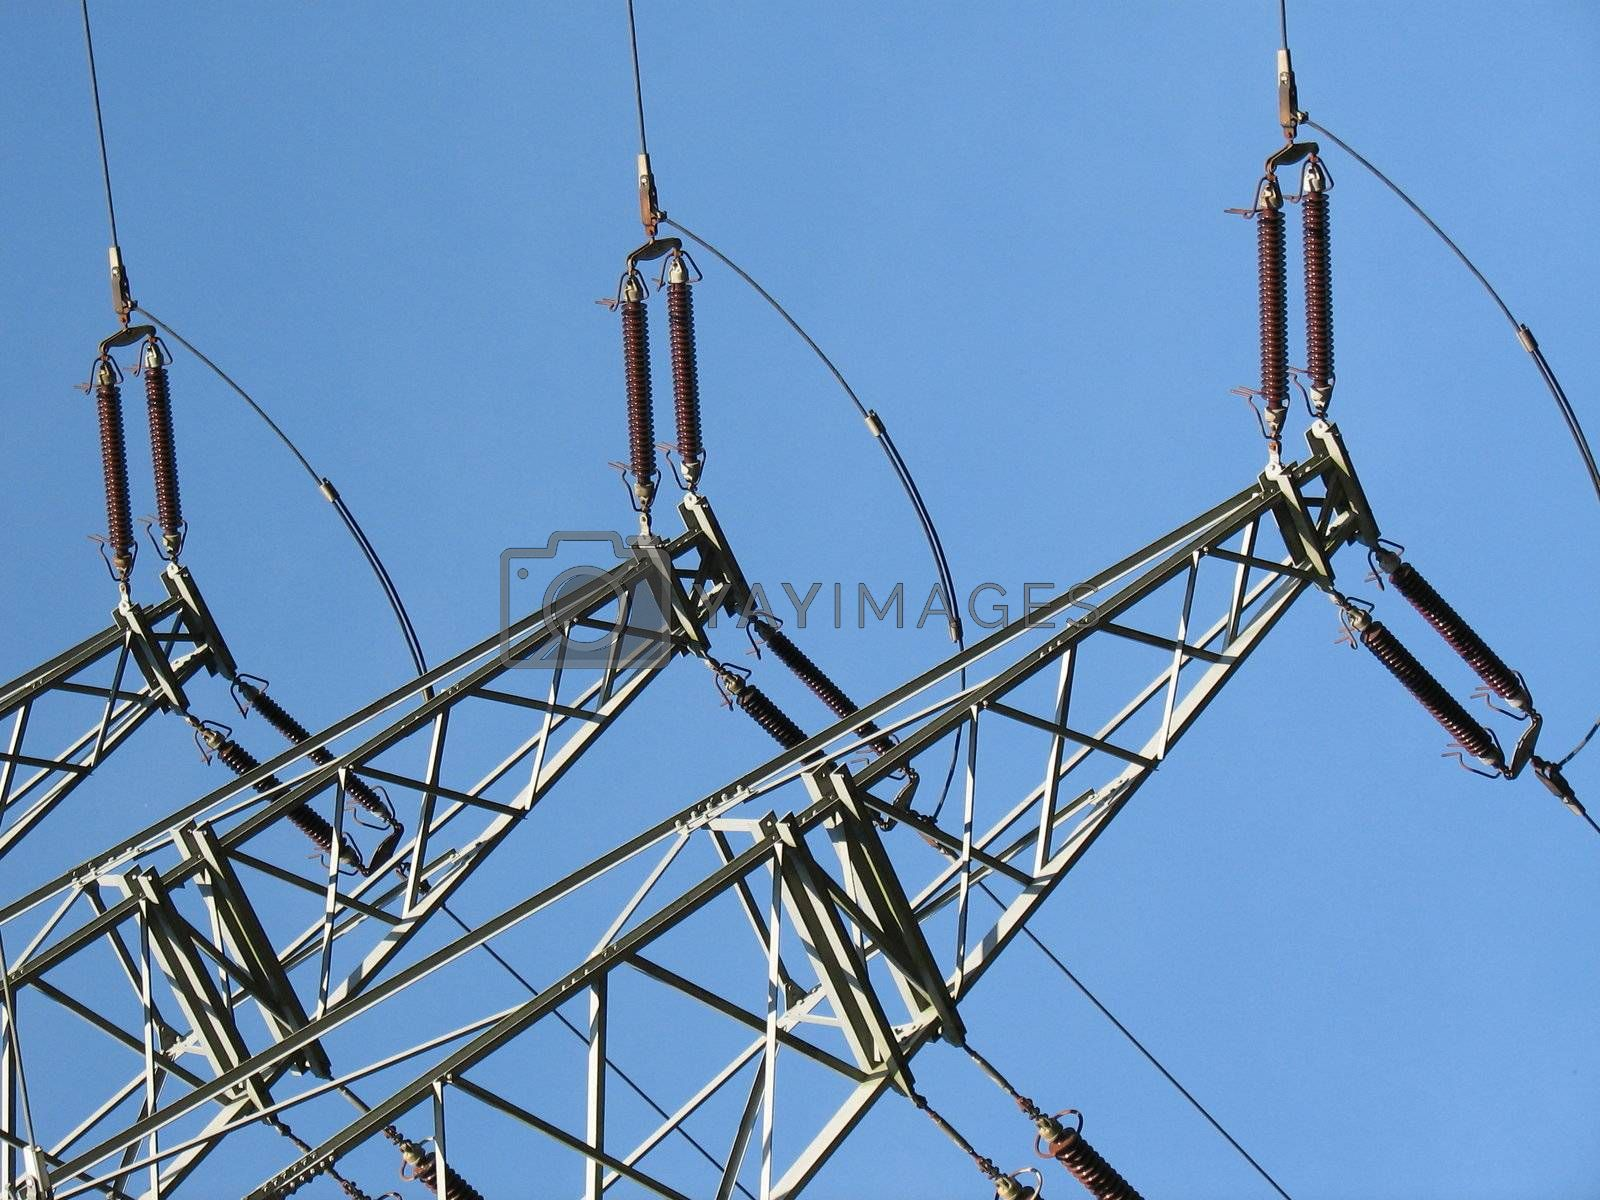 power supply lines, Emsland, Germany, 2008